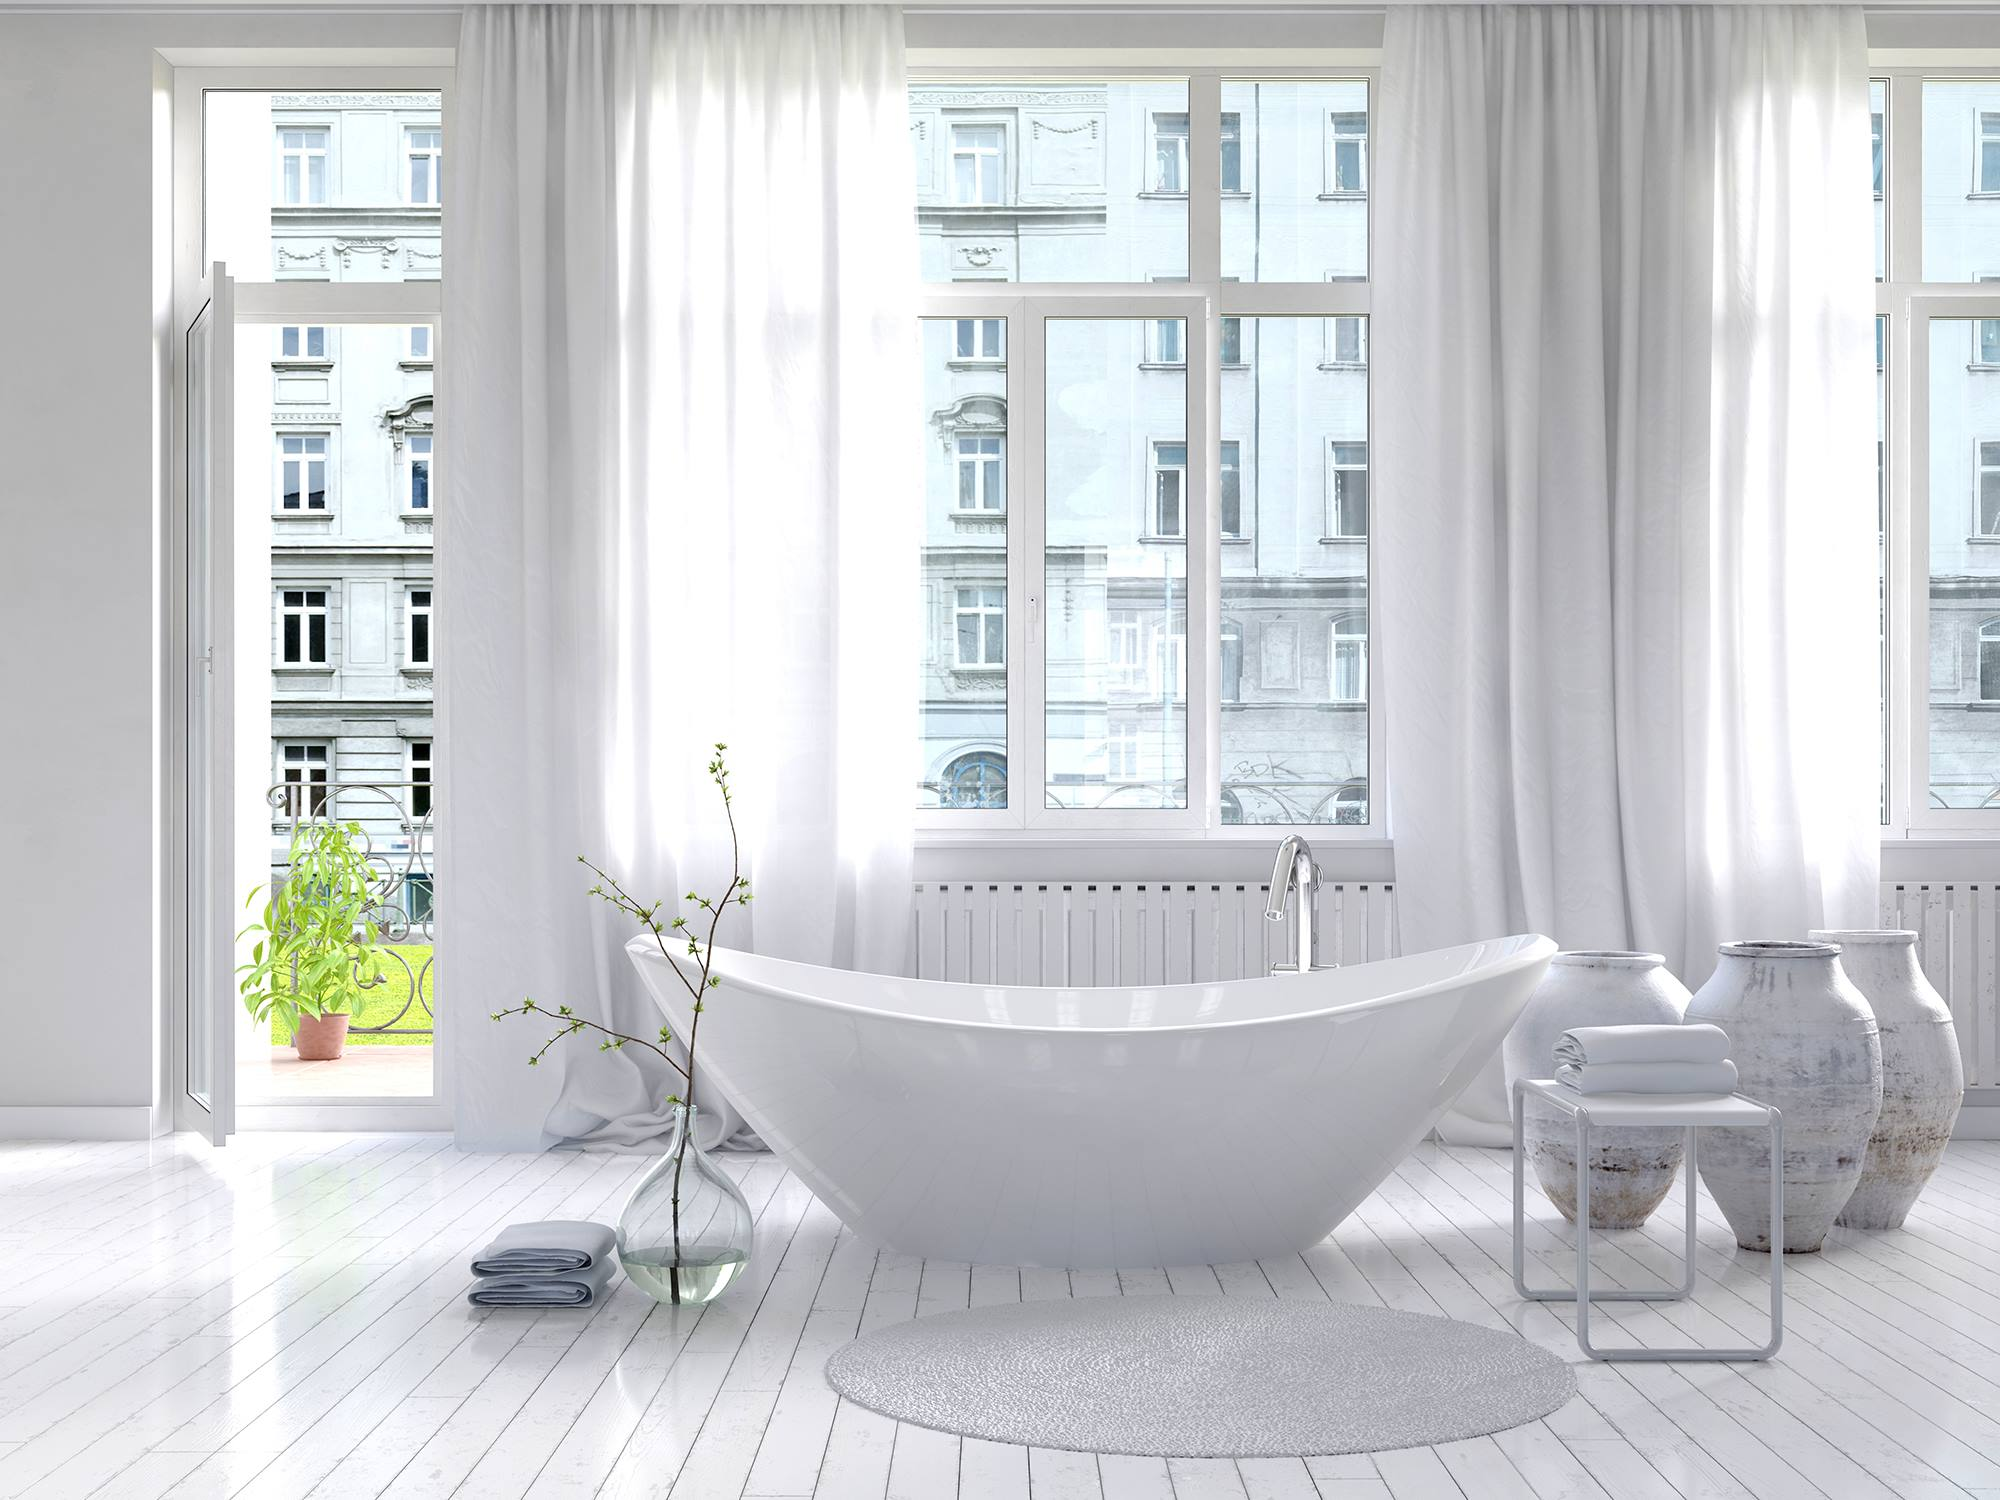 Revitalize Your Bathroom With a Al\'s Bathtub Refinishing - Al\'s ...